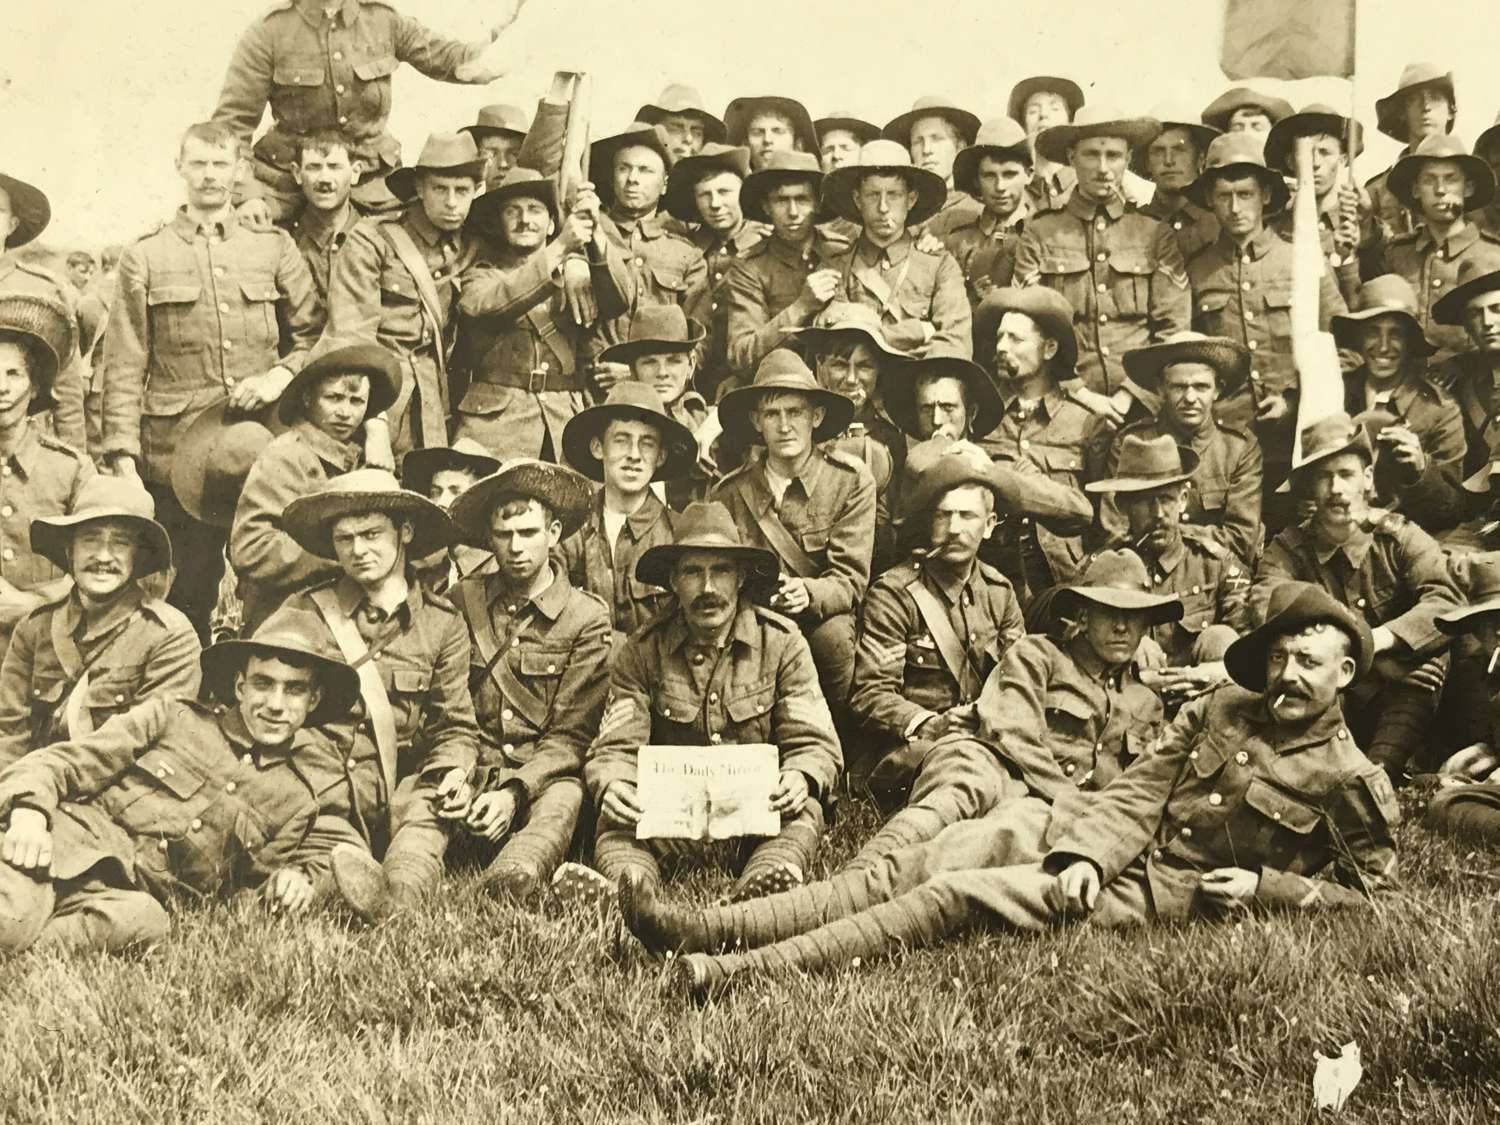 Photograph of Australian/ Commonwealth troops